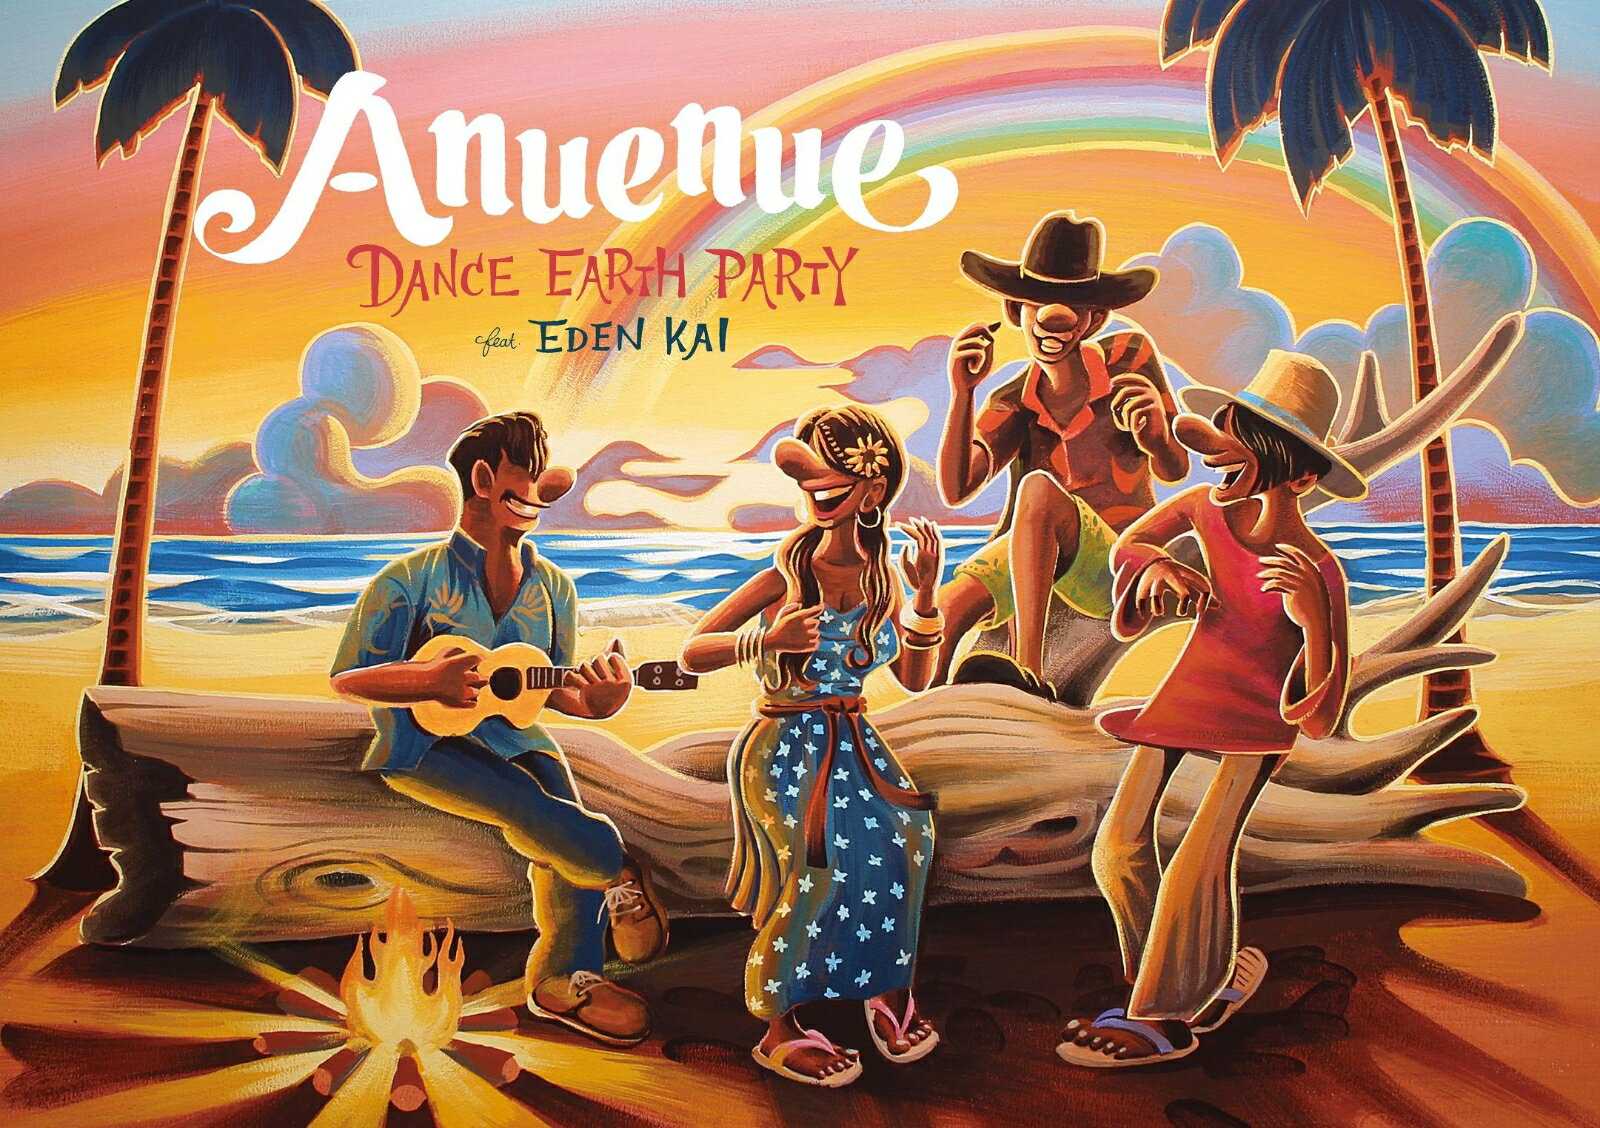 Anuenue (CD+3Blu-ray) [ DANCE EARTH PARTY ]